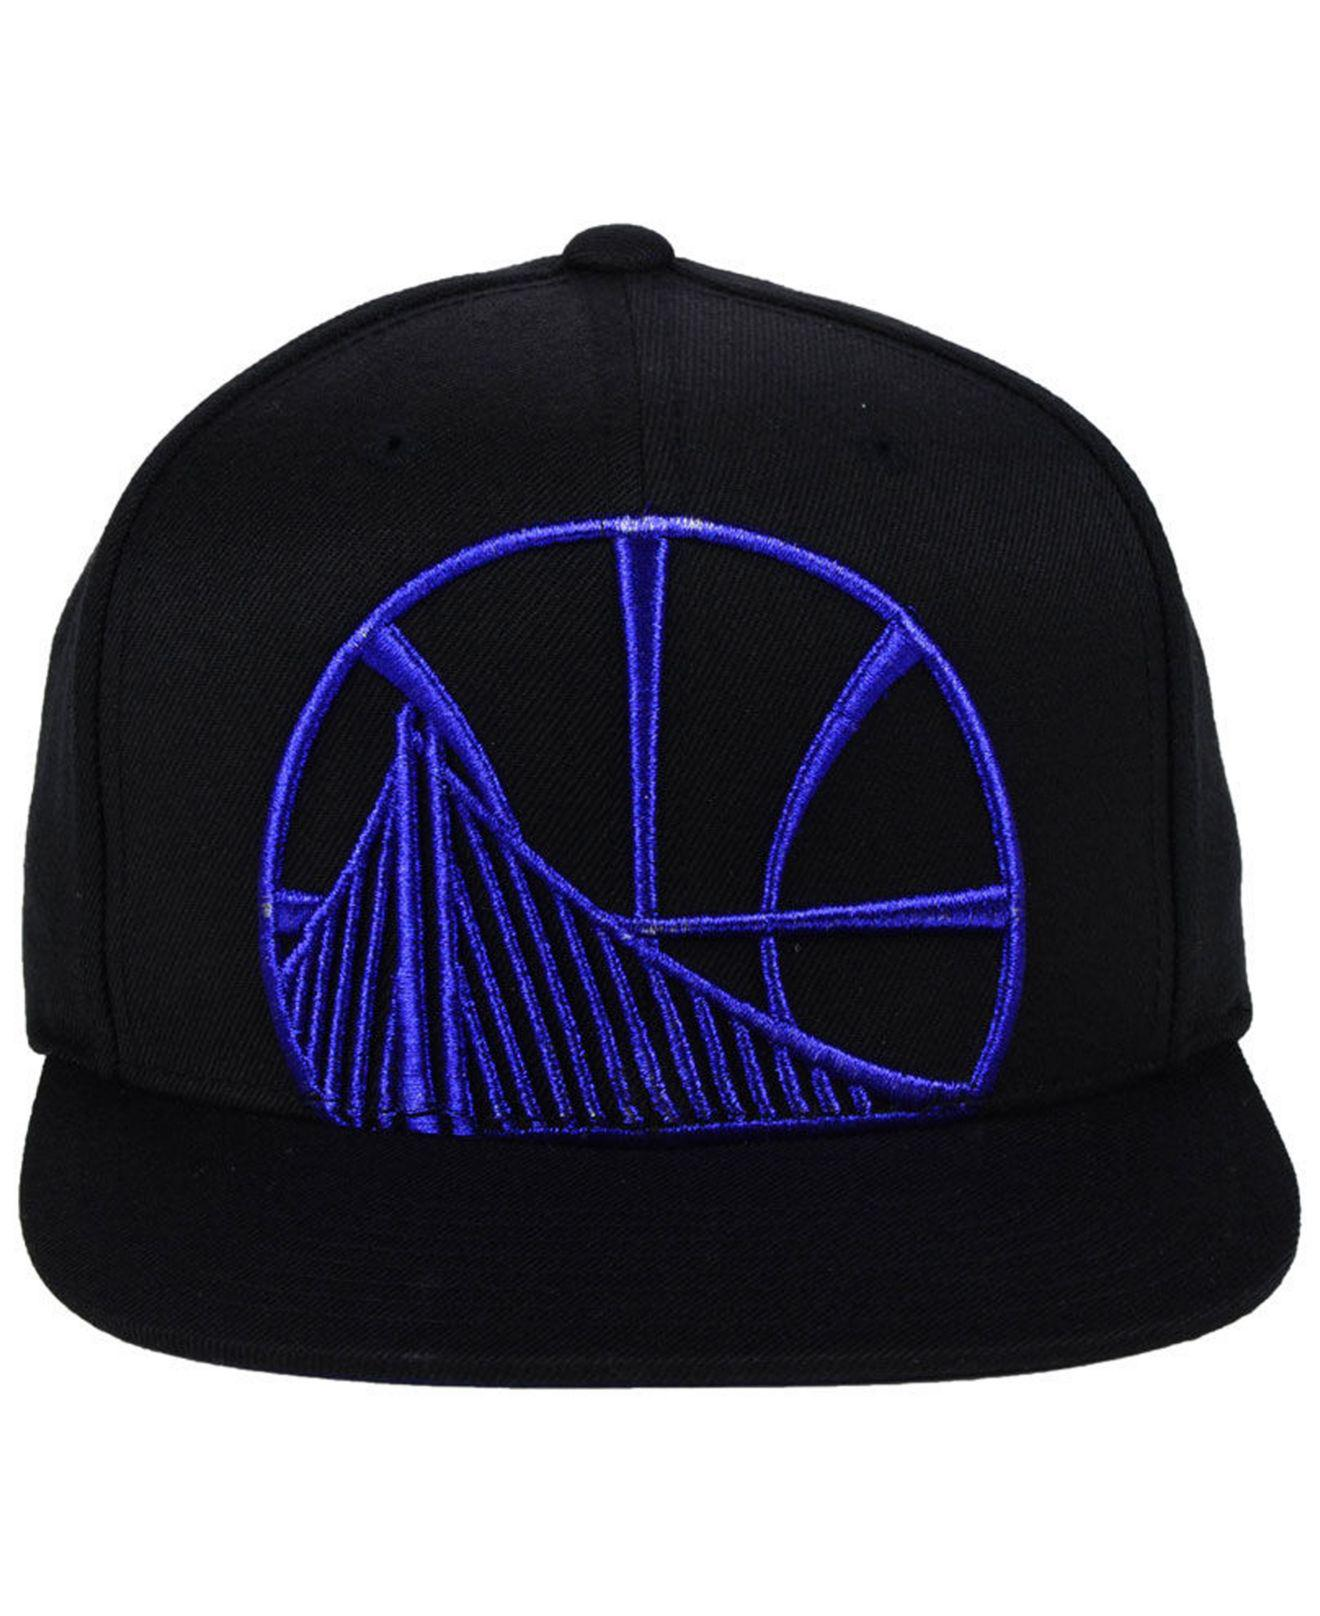 buy popular c5577 bf44a ... greece lyst mitchell ness golden state warriors metallic cropped snapback  cap in black for men 5d2c3